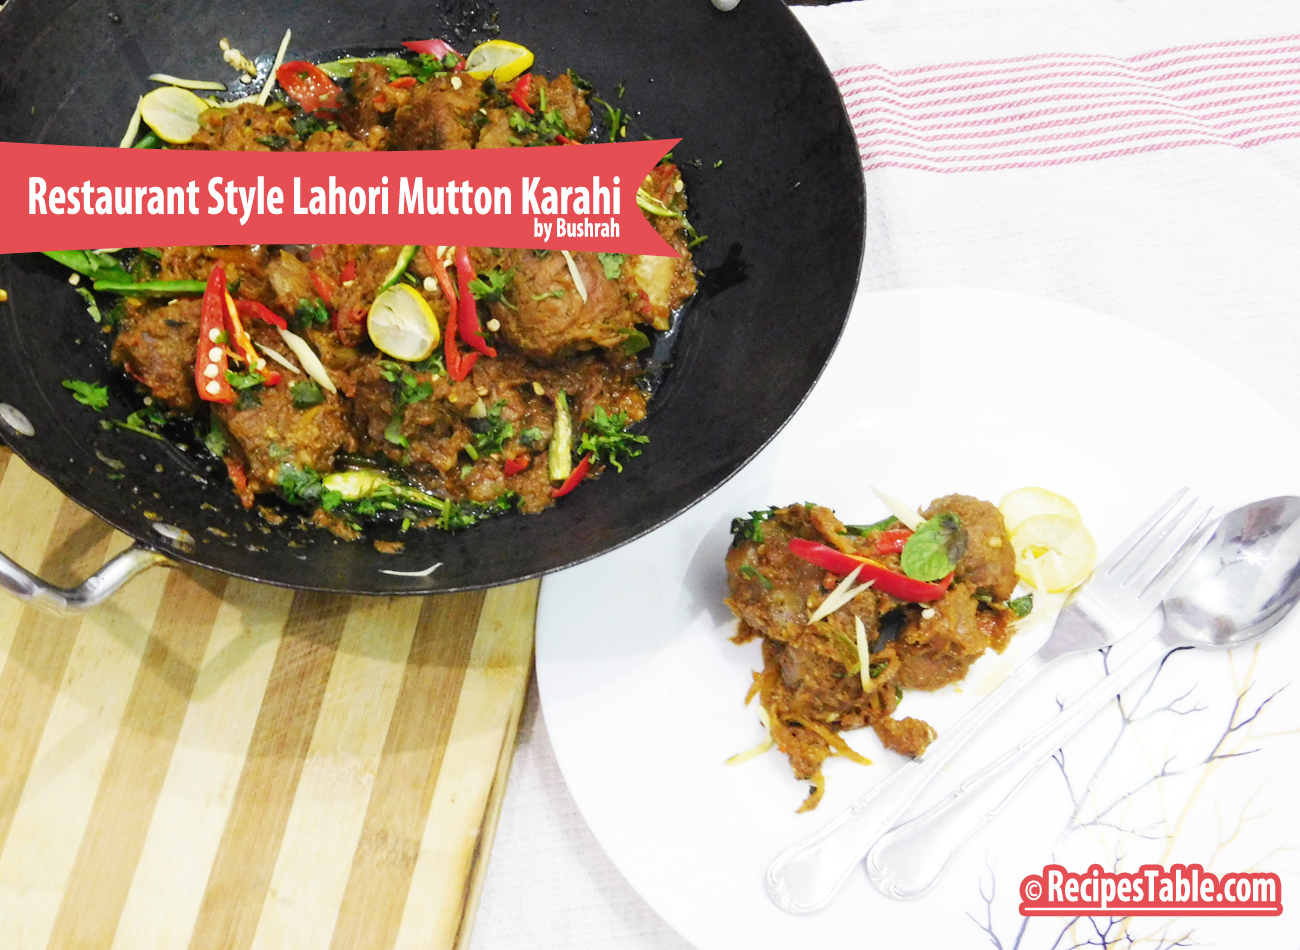 Restaurant Style Lahori Mutton Karahi Recipe